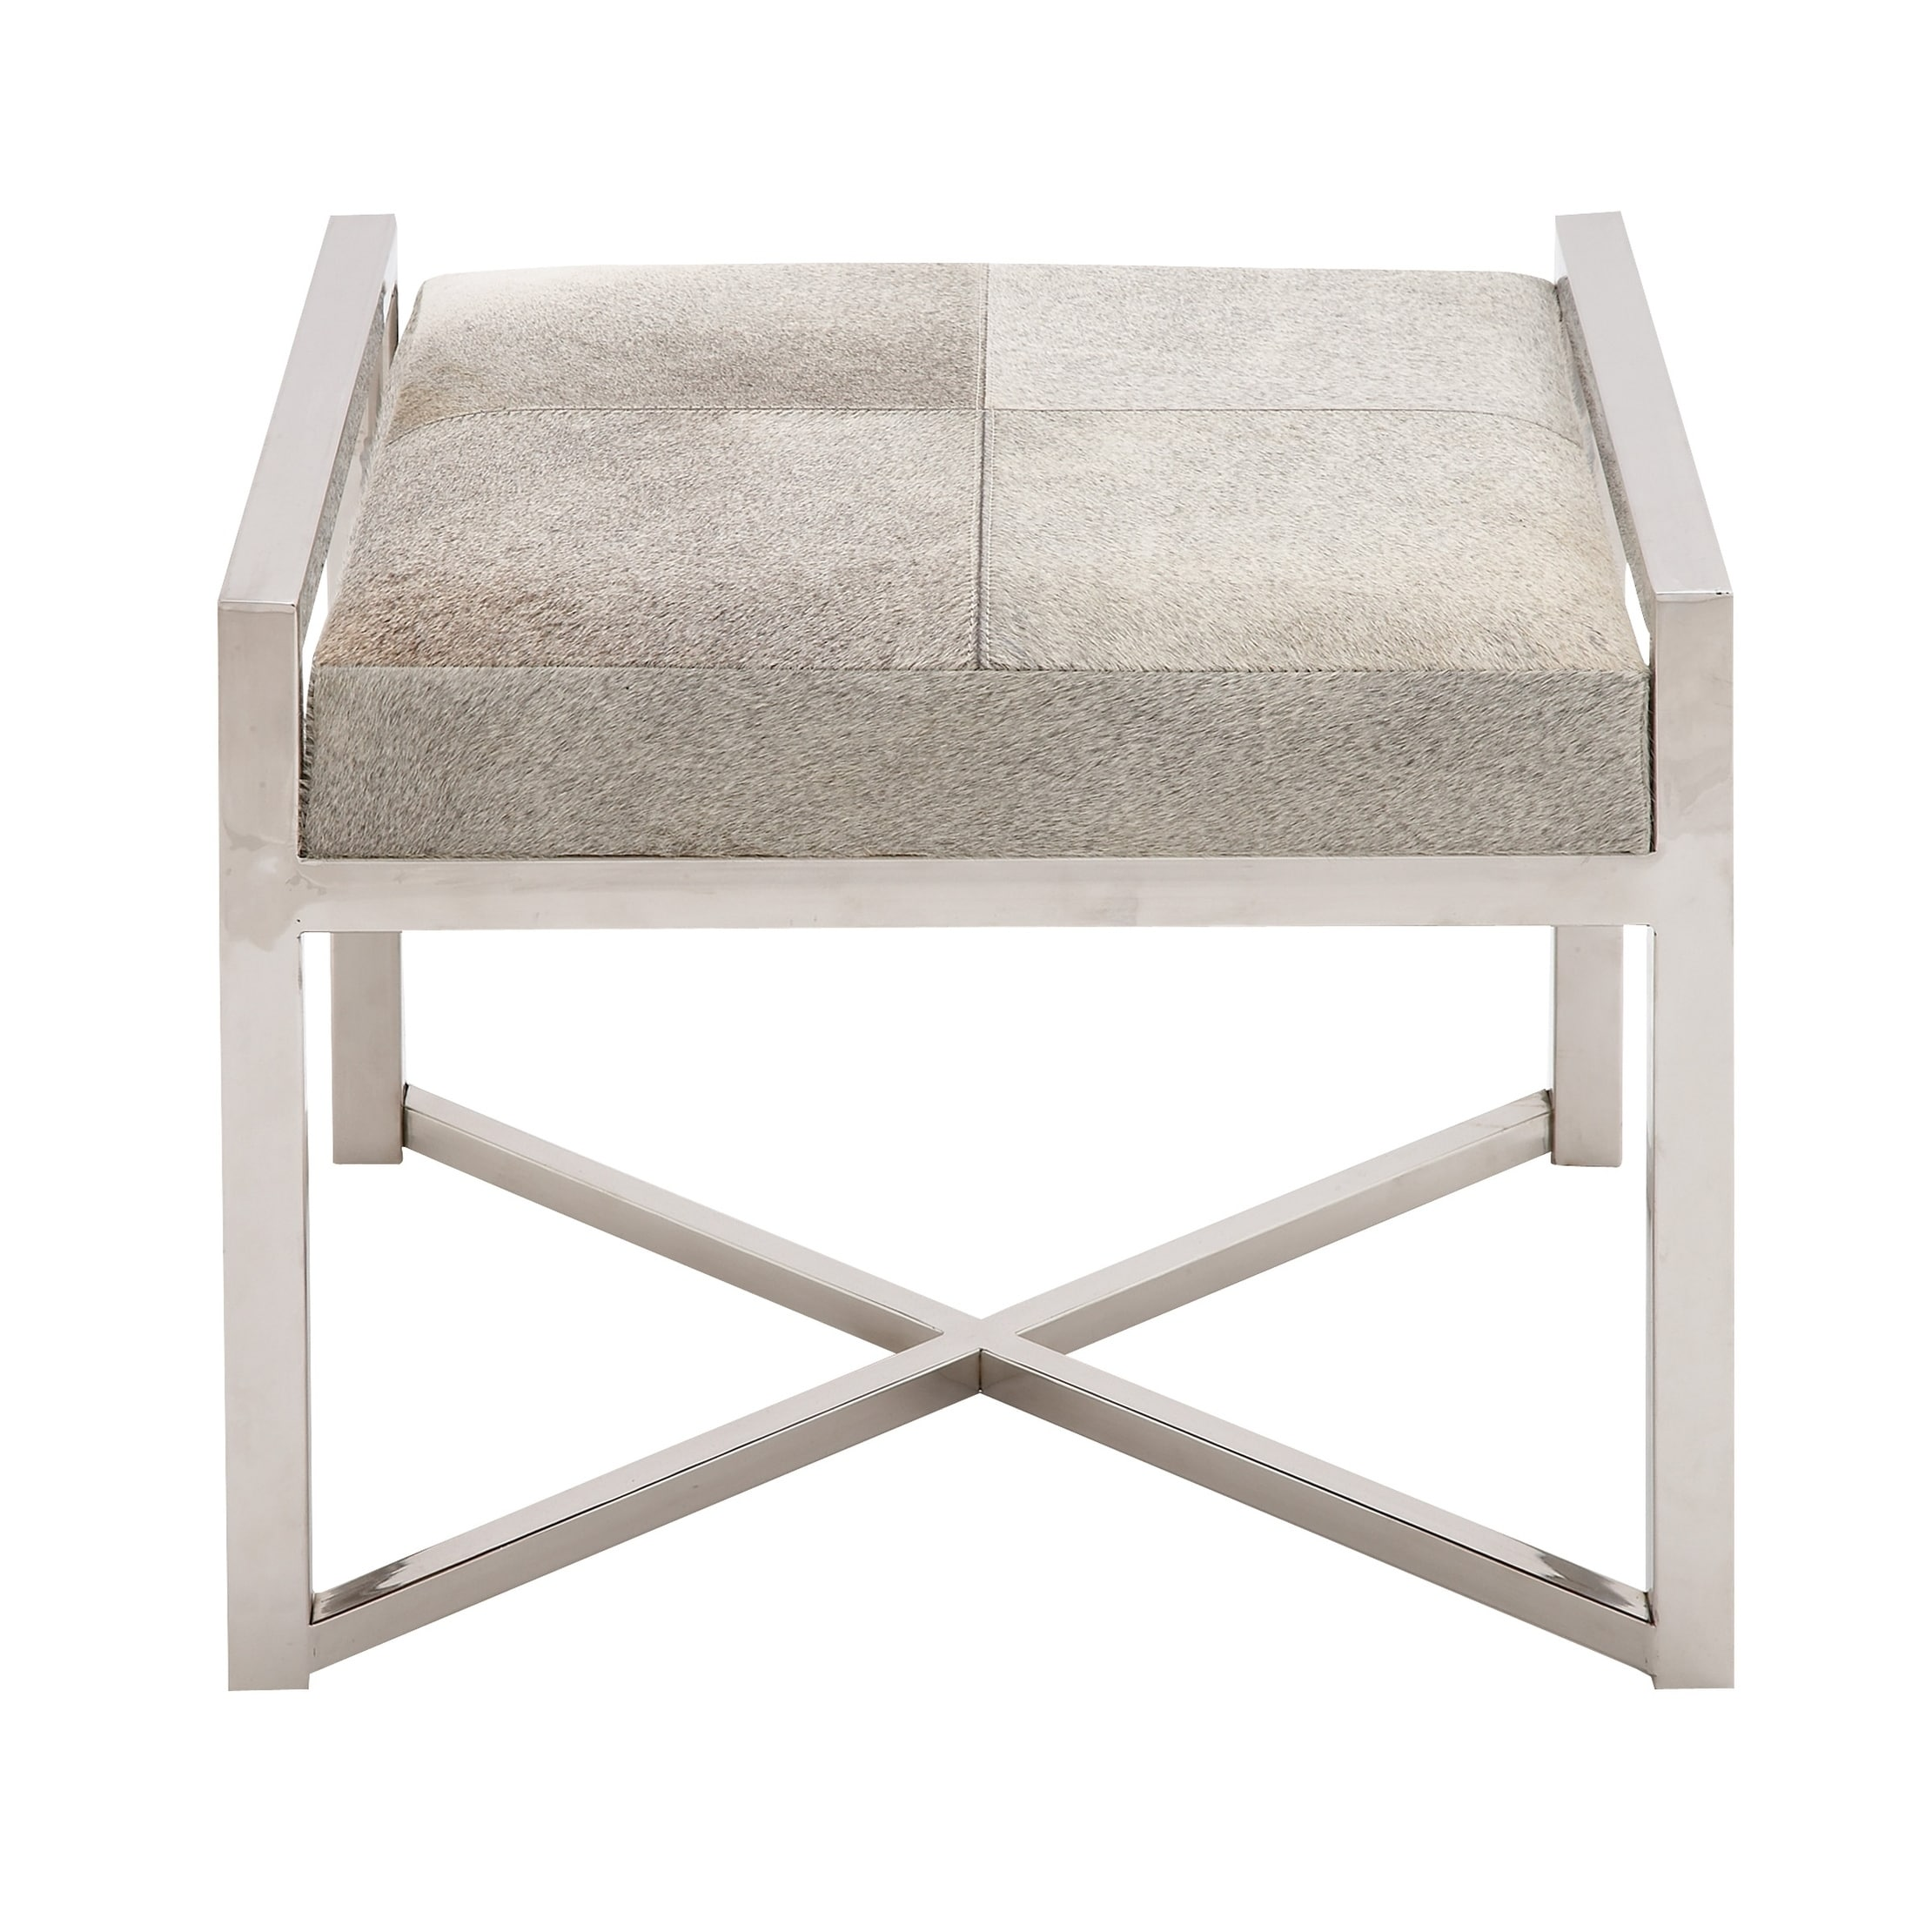 Modern 17 x 22 inch square steel wood foam and leather stool